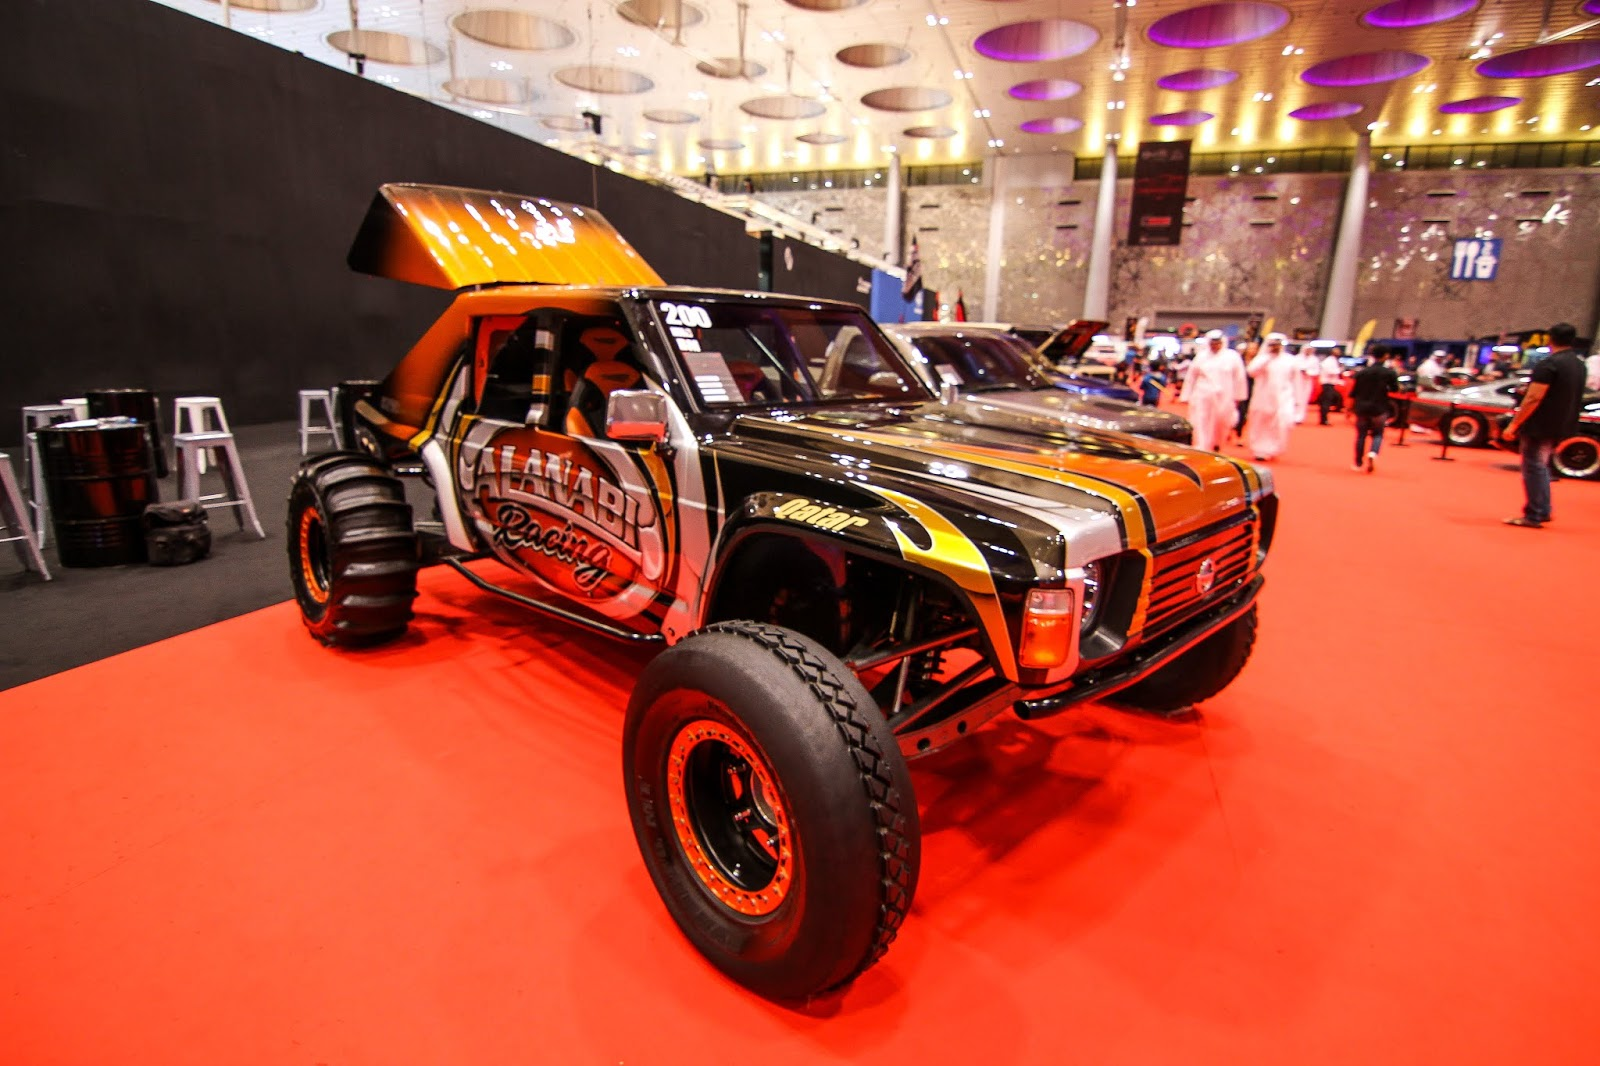 hight resolution of baja nissan patrol by joe fab at qatar motor show